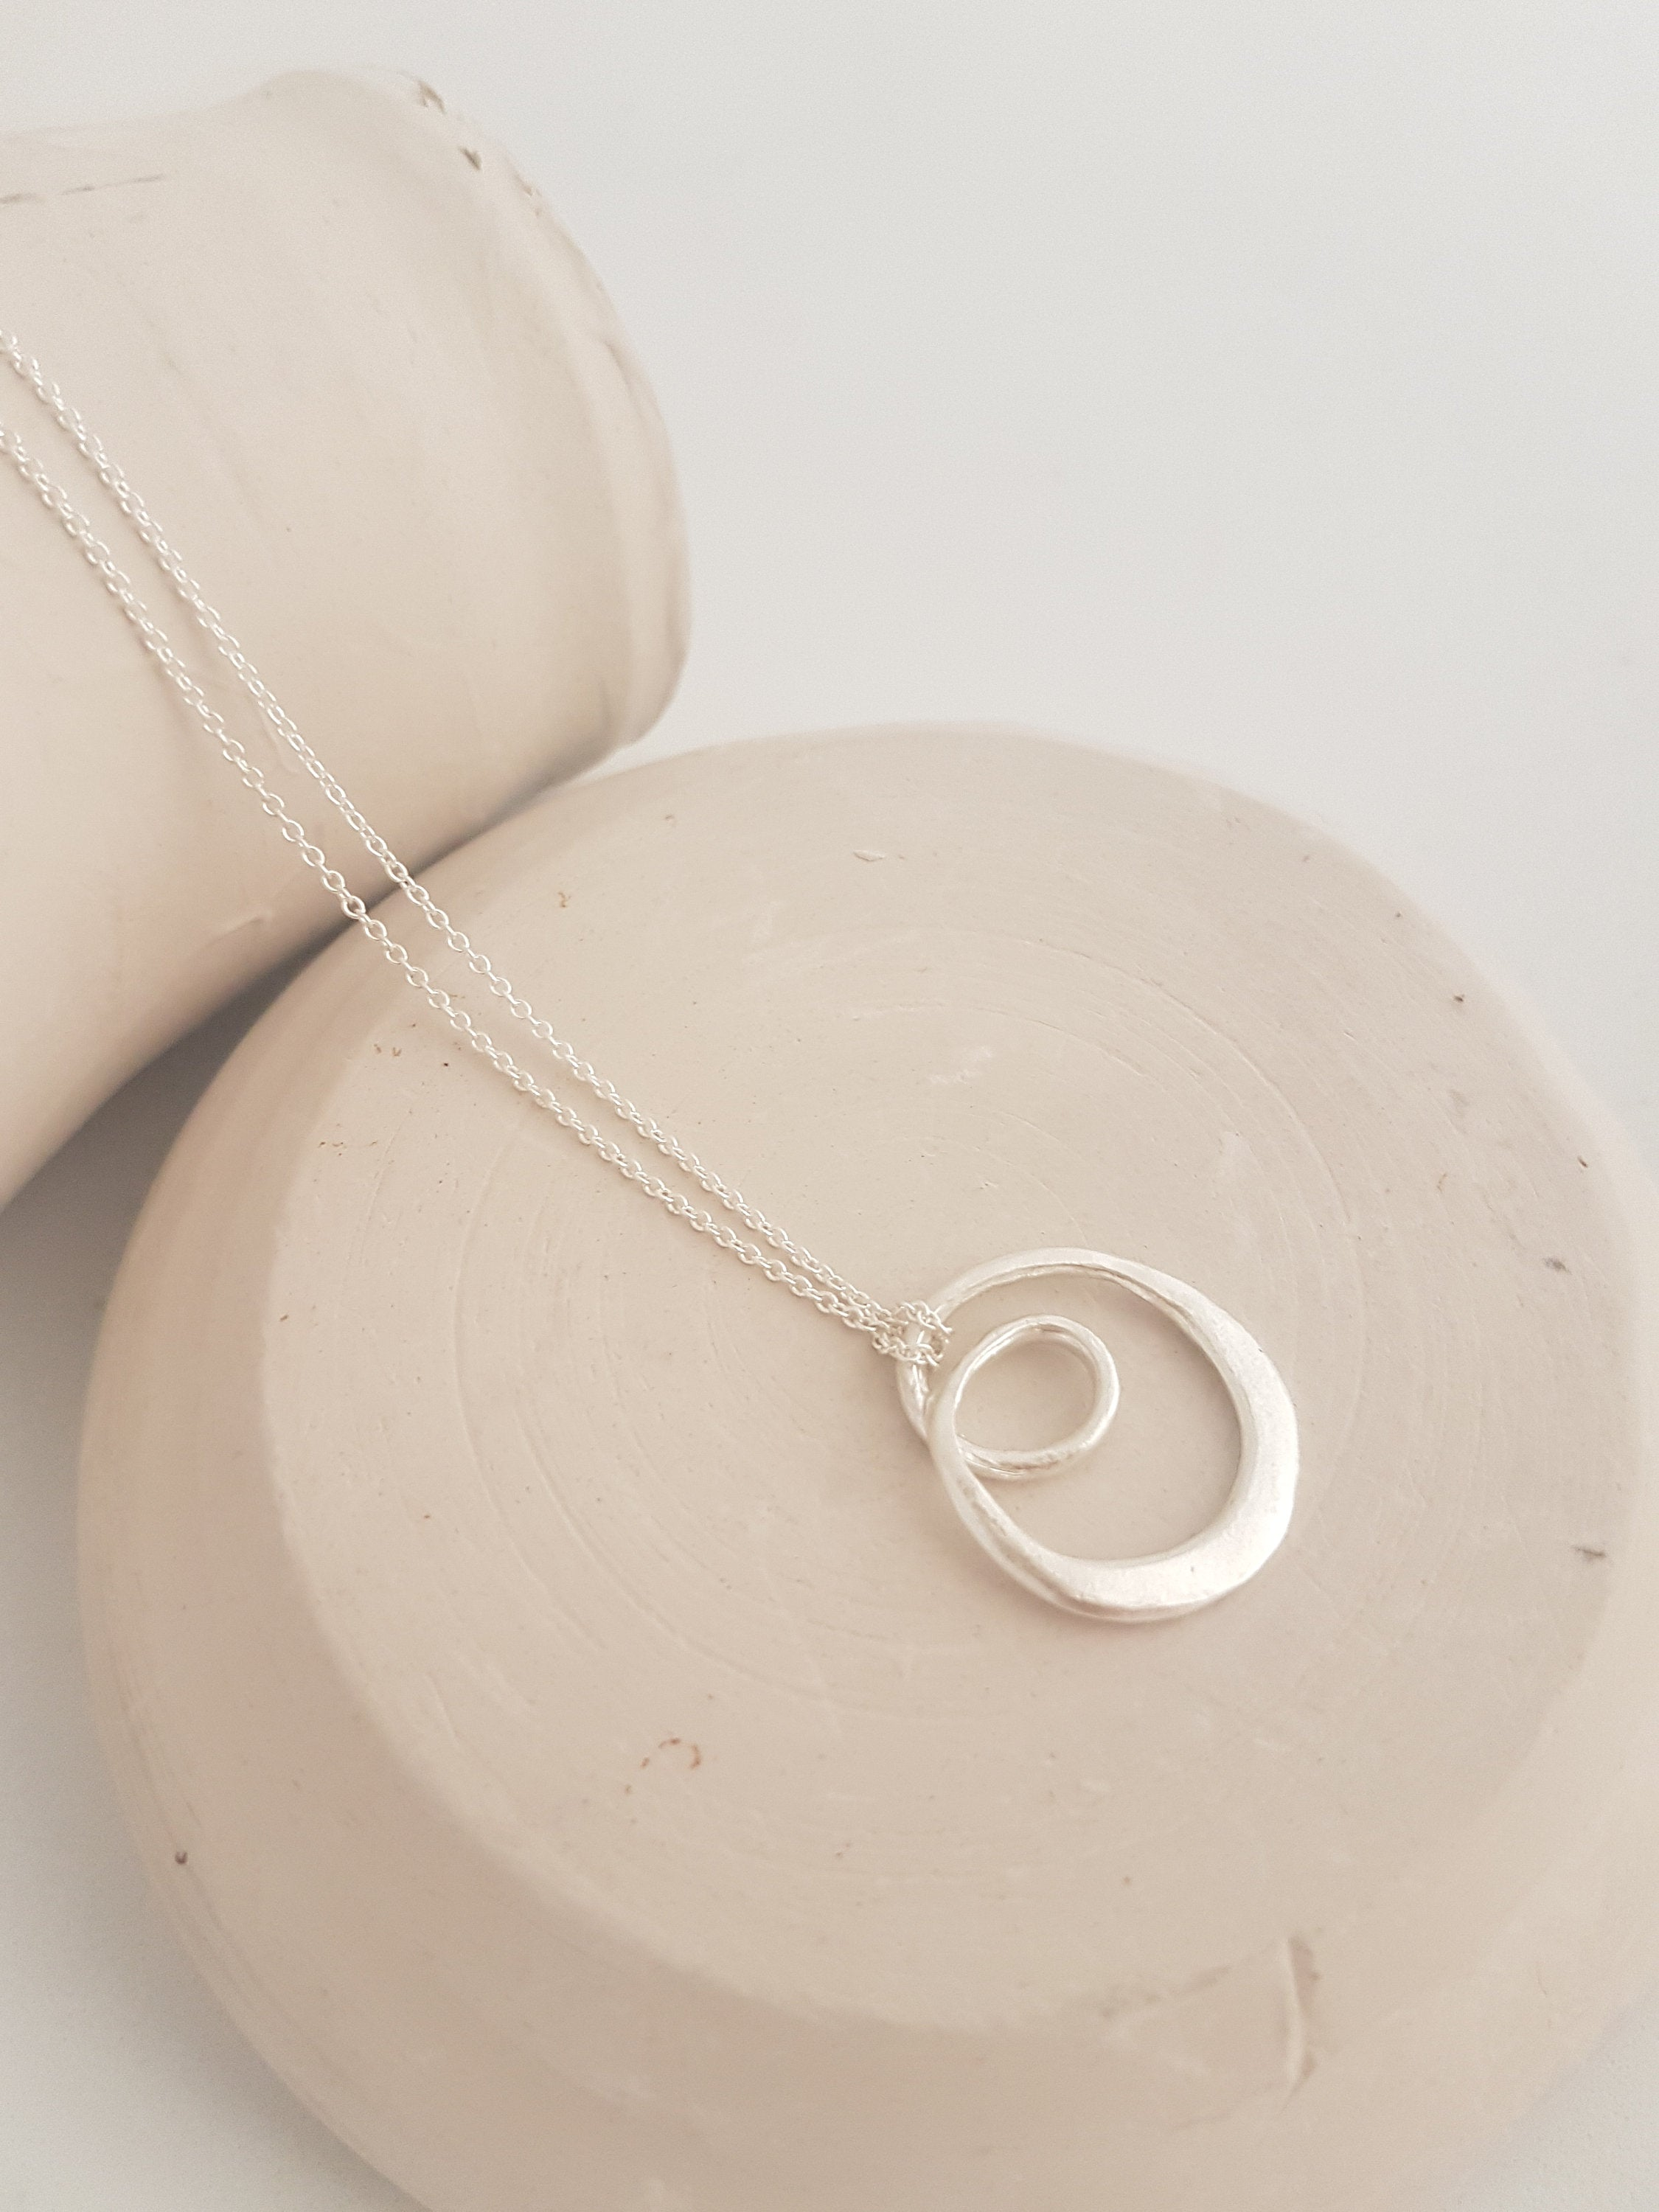 pendant necklace in sterling silver, spiral pendant necklace for woman